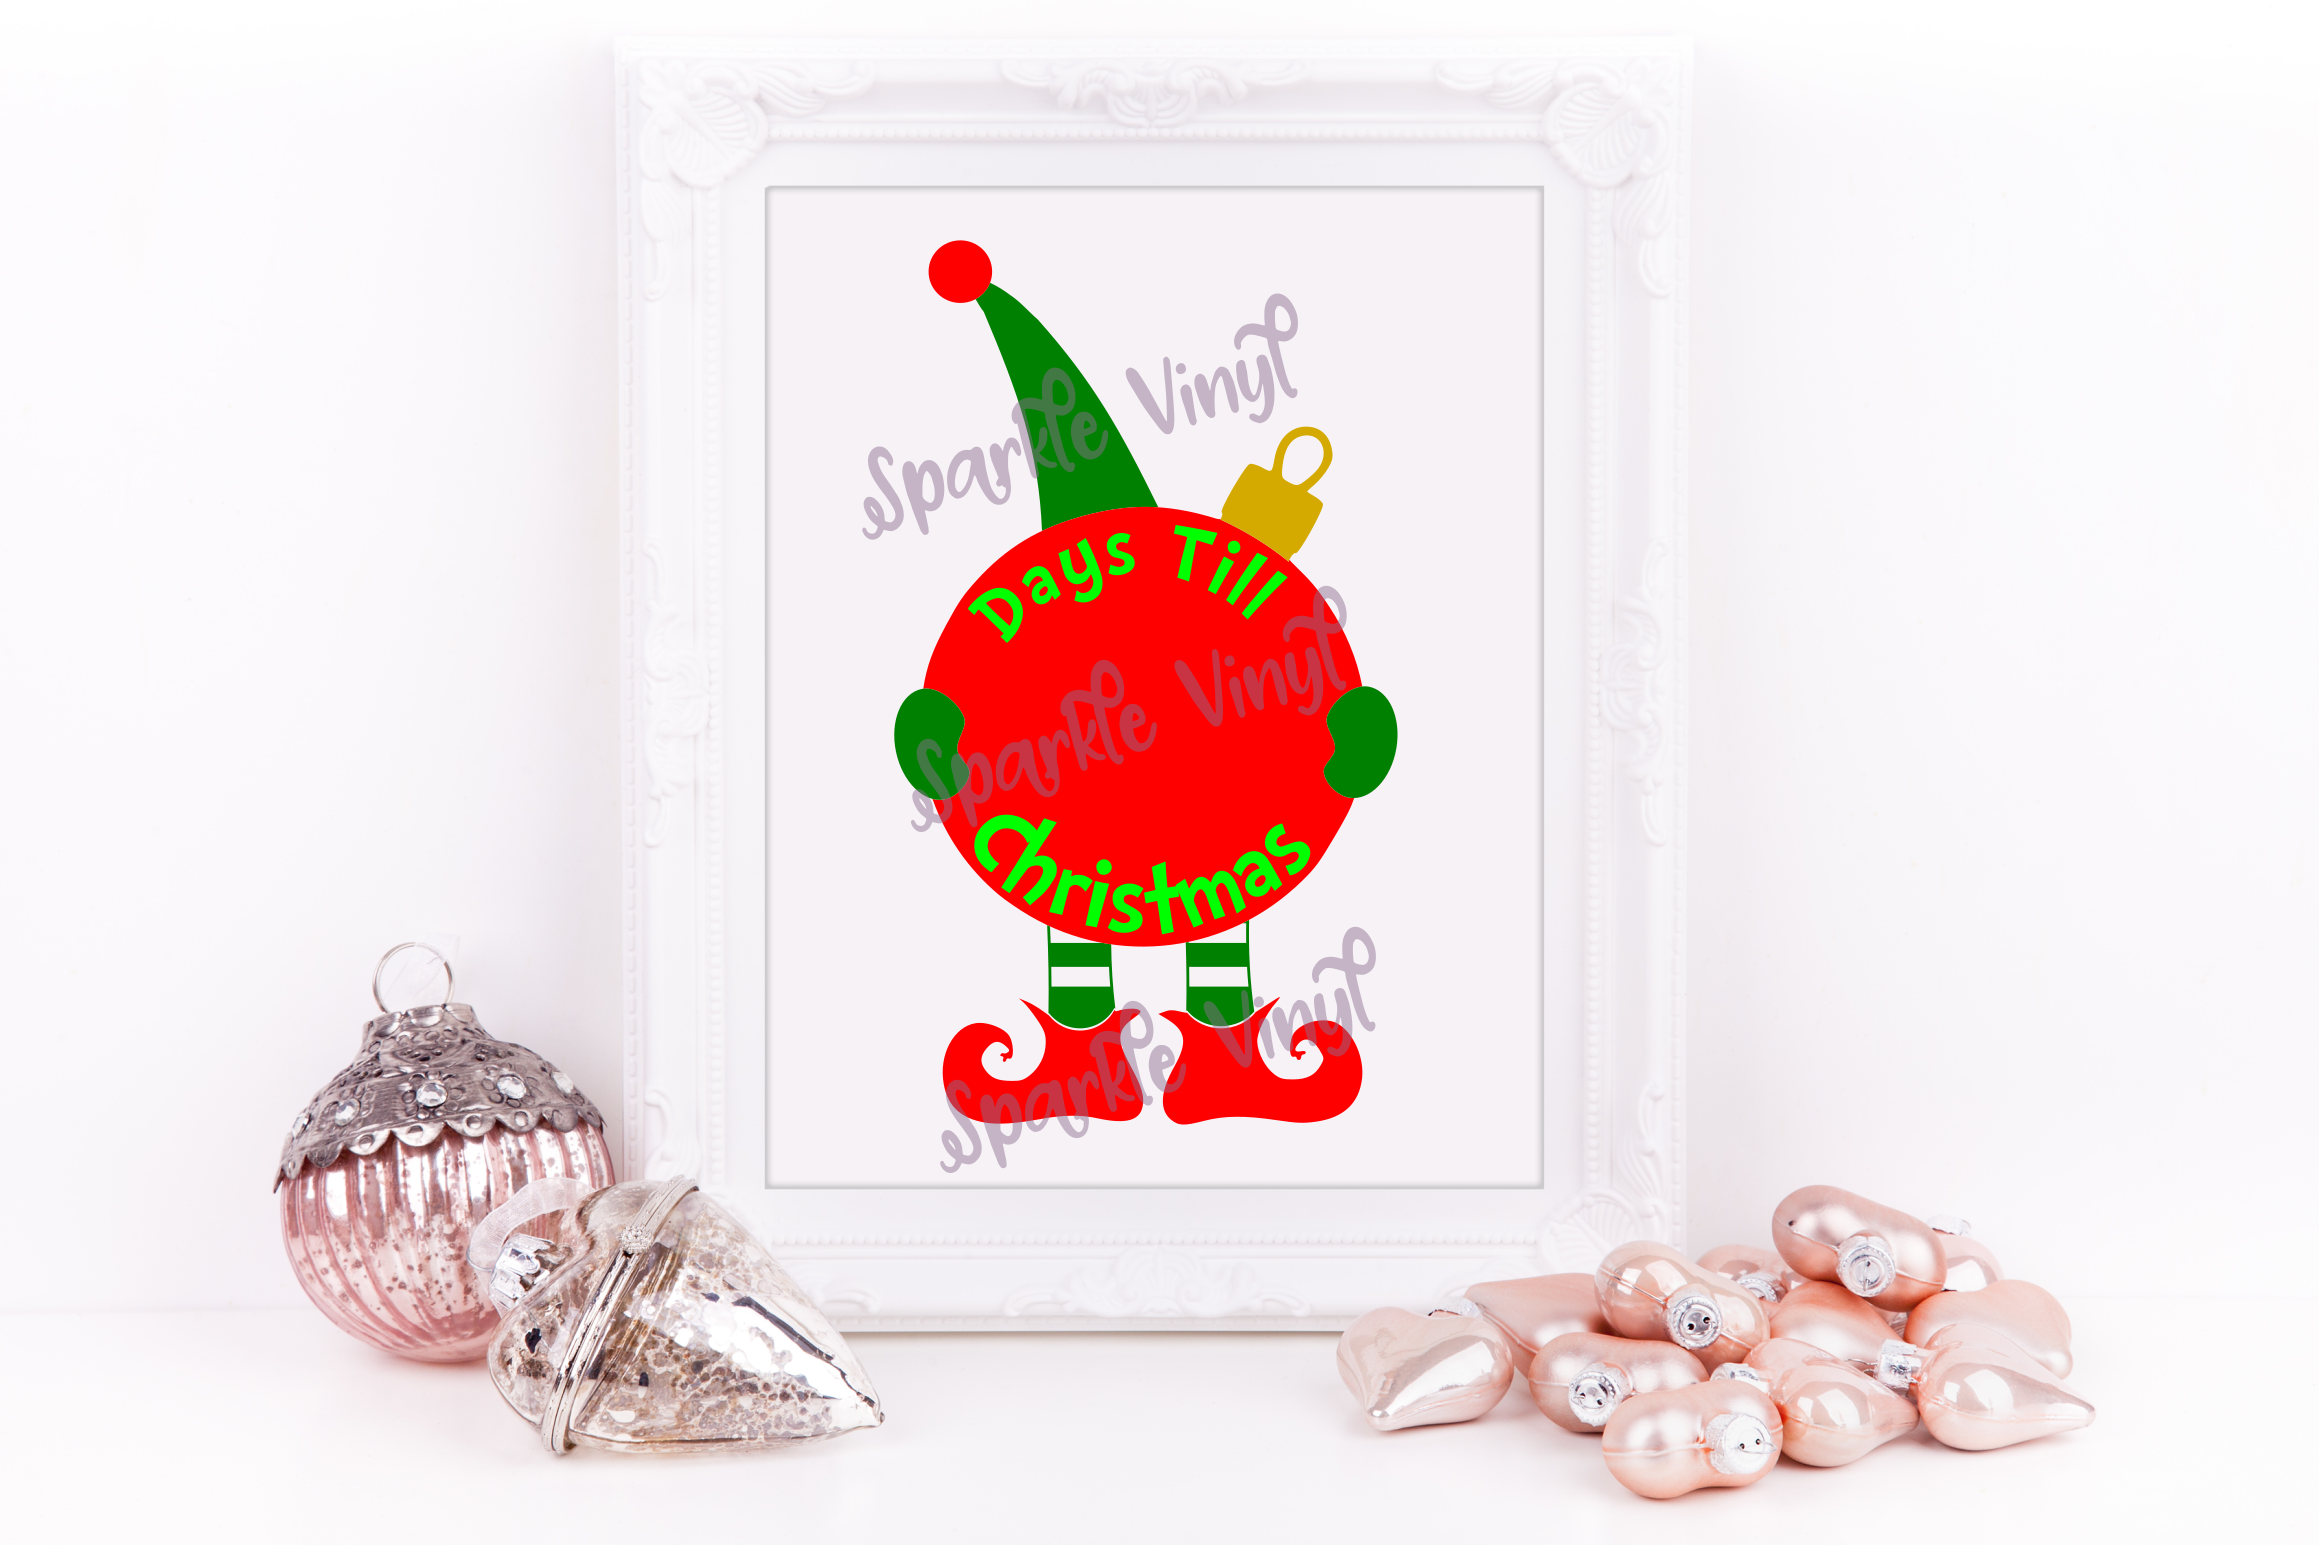 Svg Christmas Elf Countdown Advent sign picture printable svg cut file for cricut silhouette dxf eps png pdf, Elf clipart DIY Sign stencil example image 1